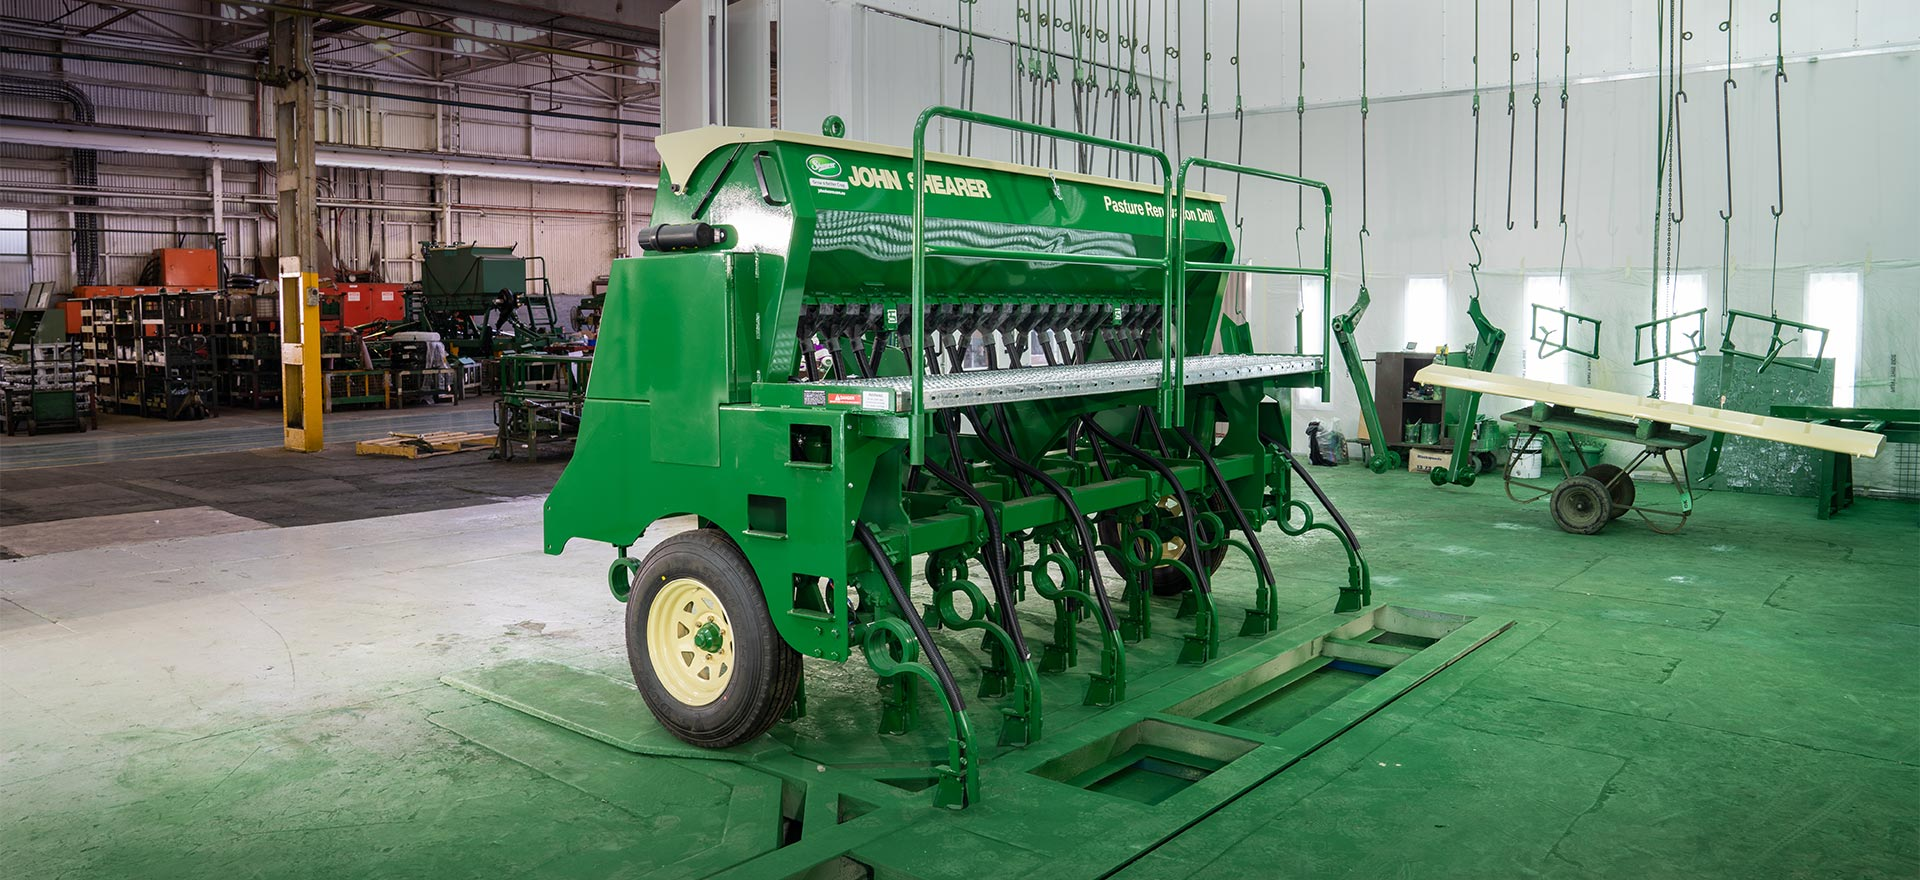 Pasture Renovation Drill in the spraybooth